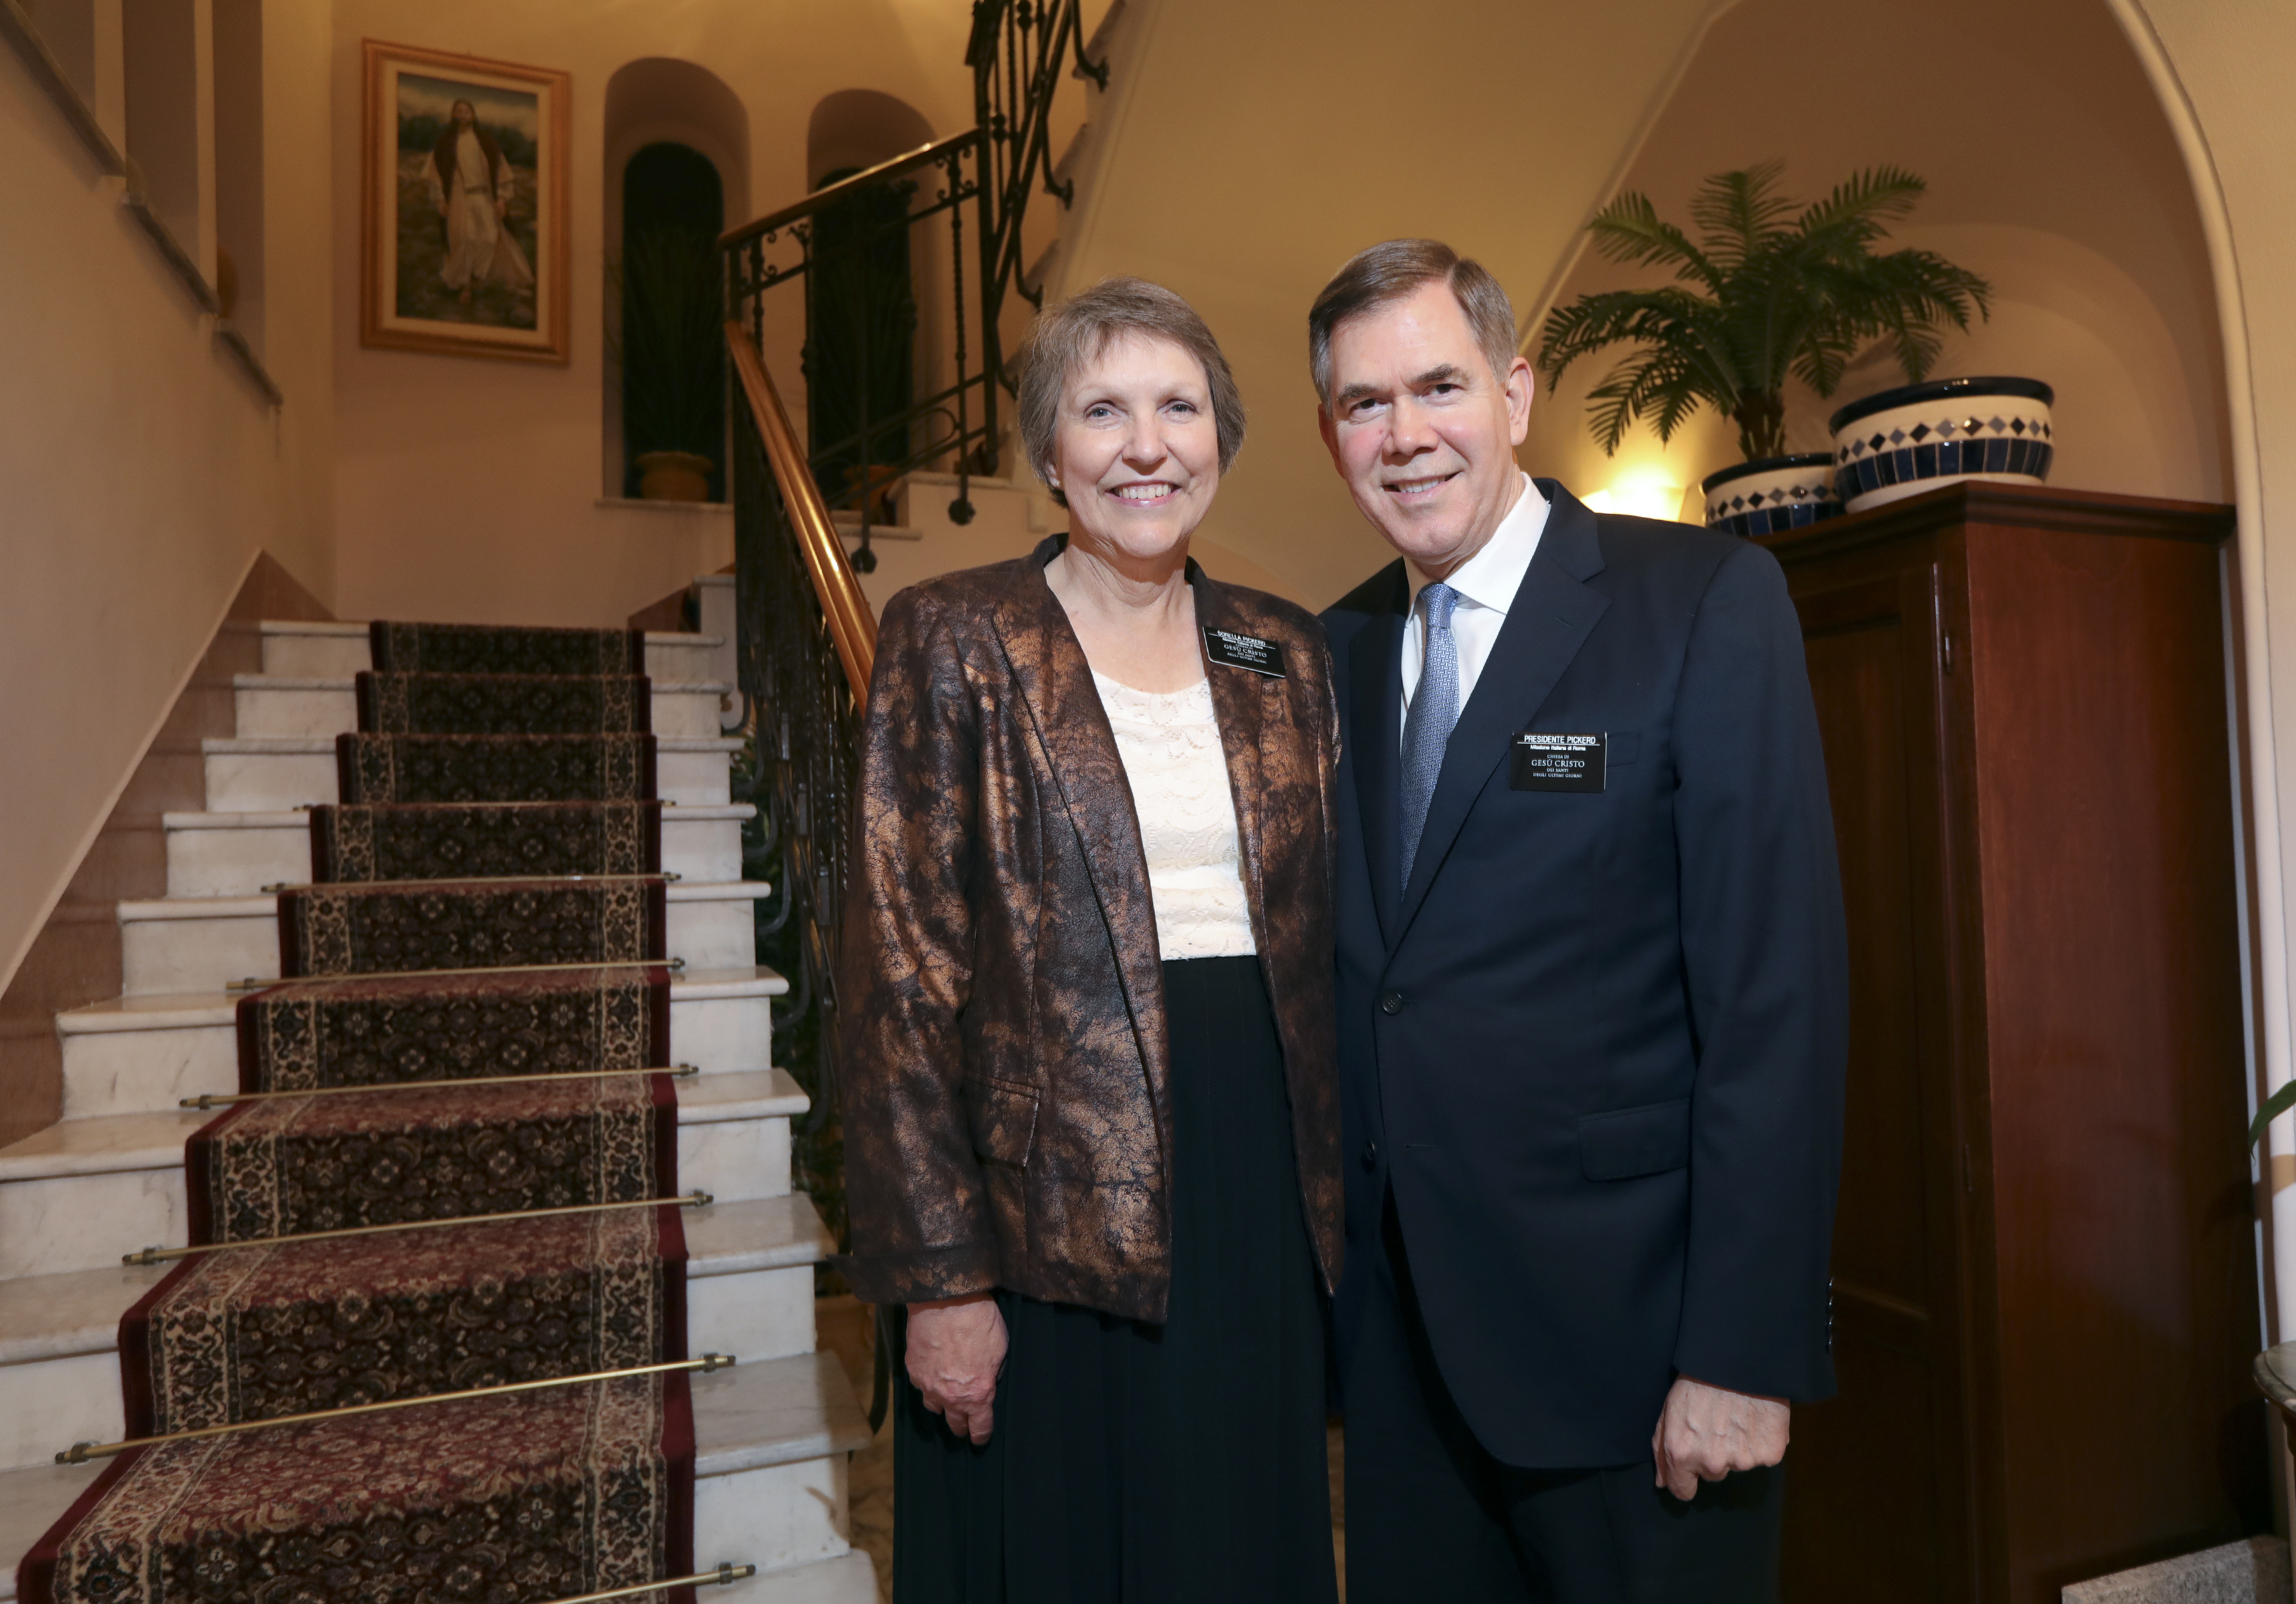 Sister Marian W. Pickerd and President Michael D. Pickerd, pose for a portrait at the mission home in Rome, Italy, on Friday, Nov. 16, 2018.